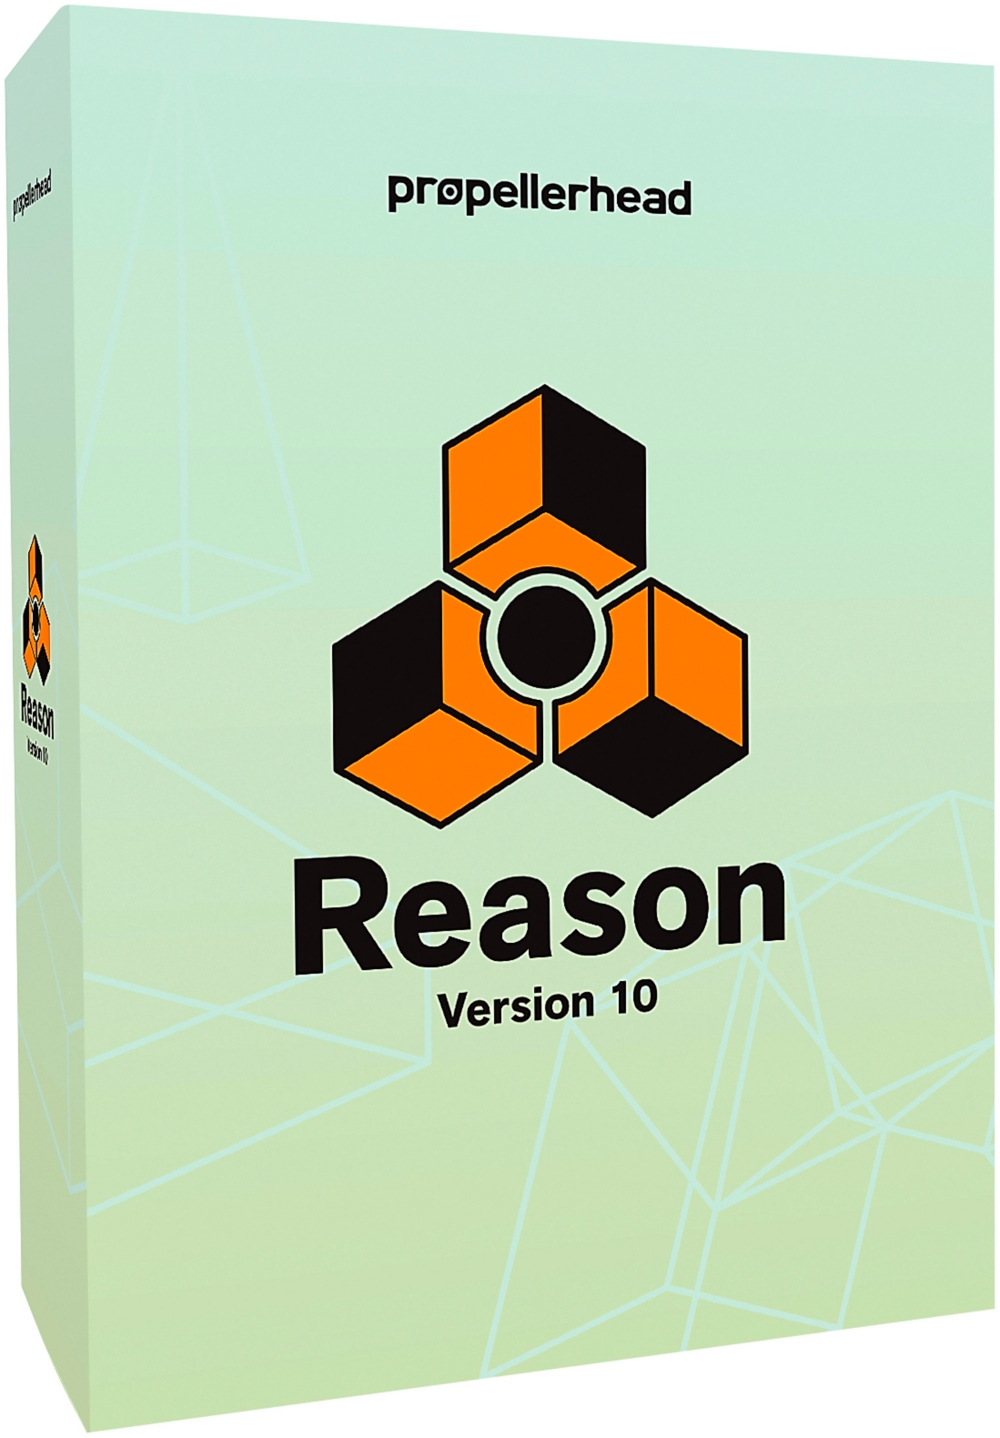 Propellerhead Reason 10 Upgrade by Propellerhead